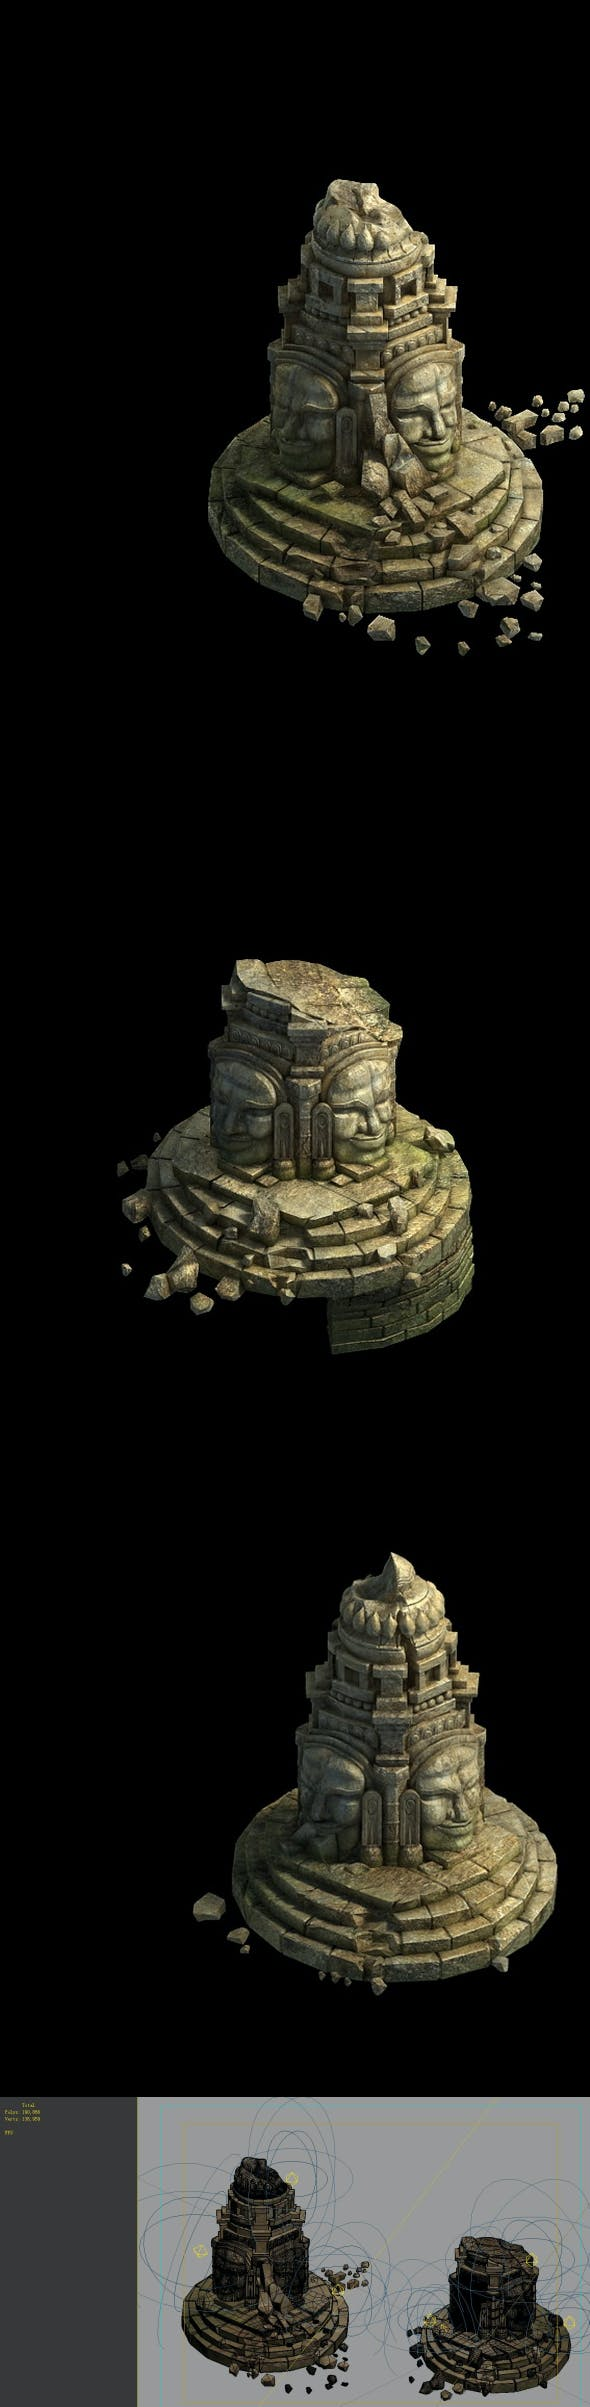 Game Model - Kasai Buddha Traces forest Asura Magic array 02 - 3DOcean Item for Sale